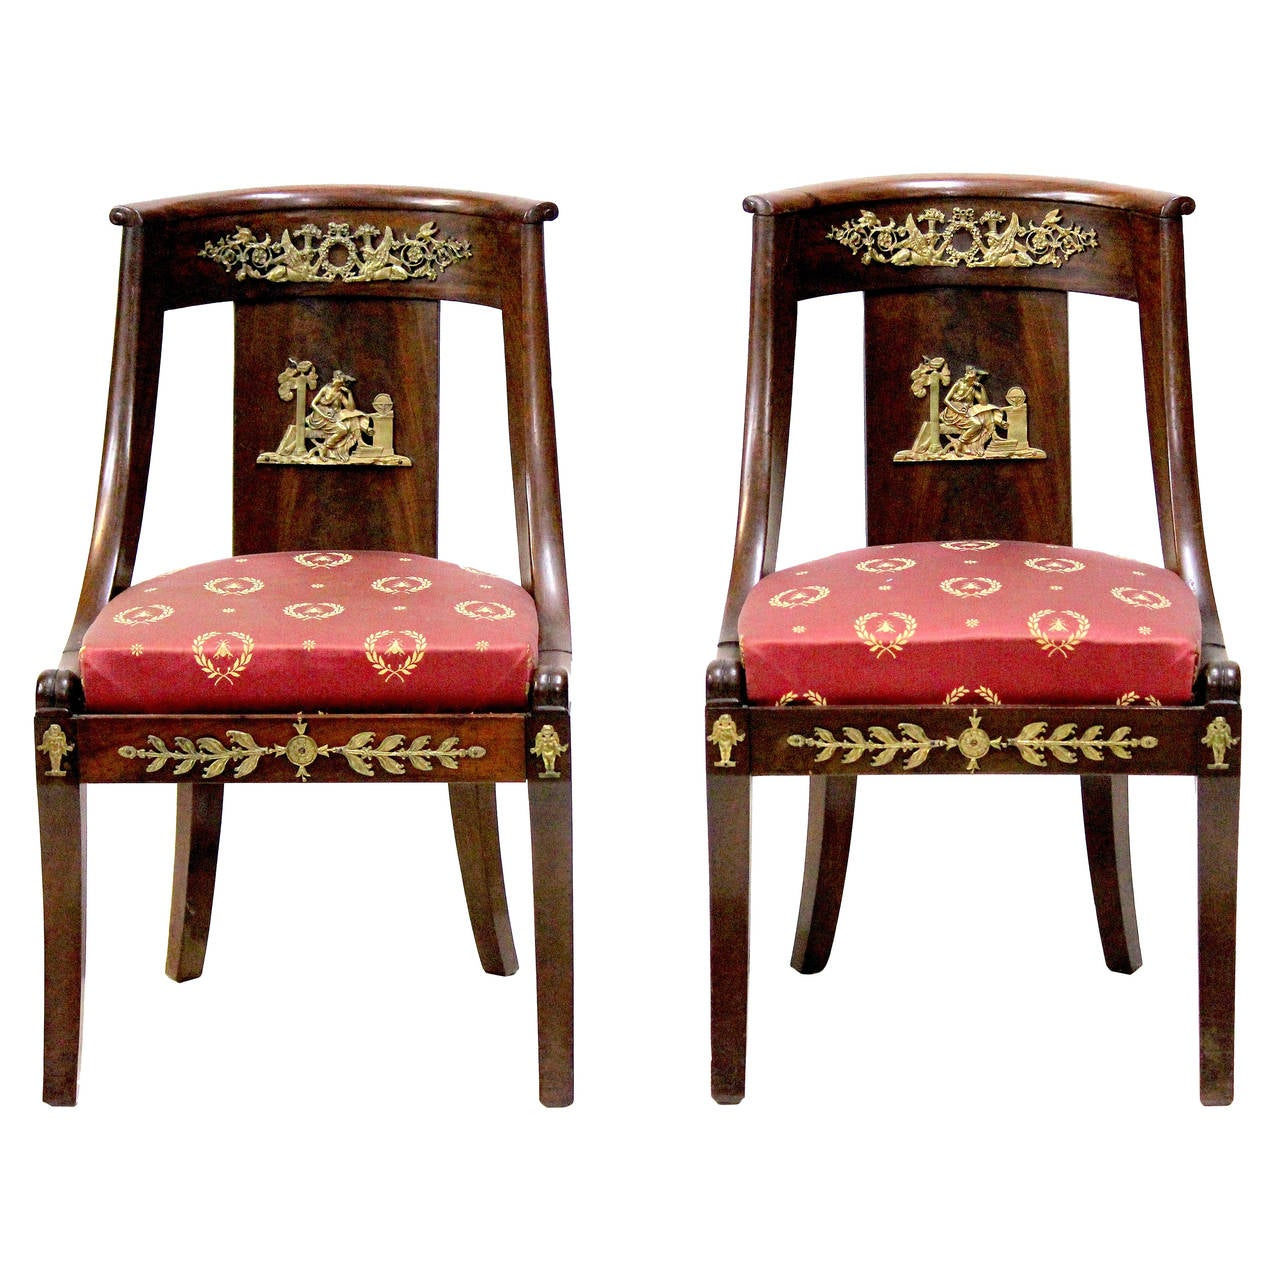 period french empire chairs circa 1825 with bonaparte